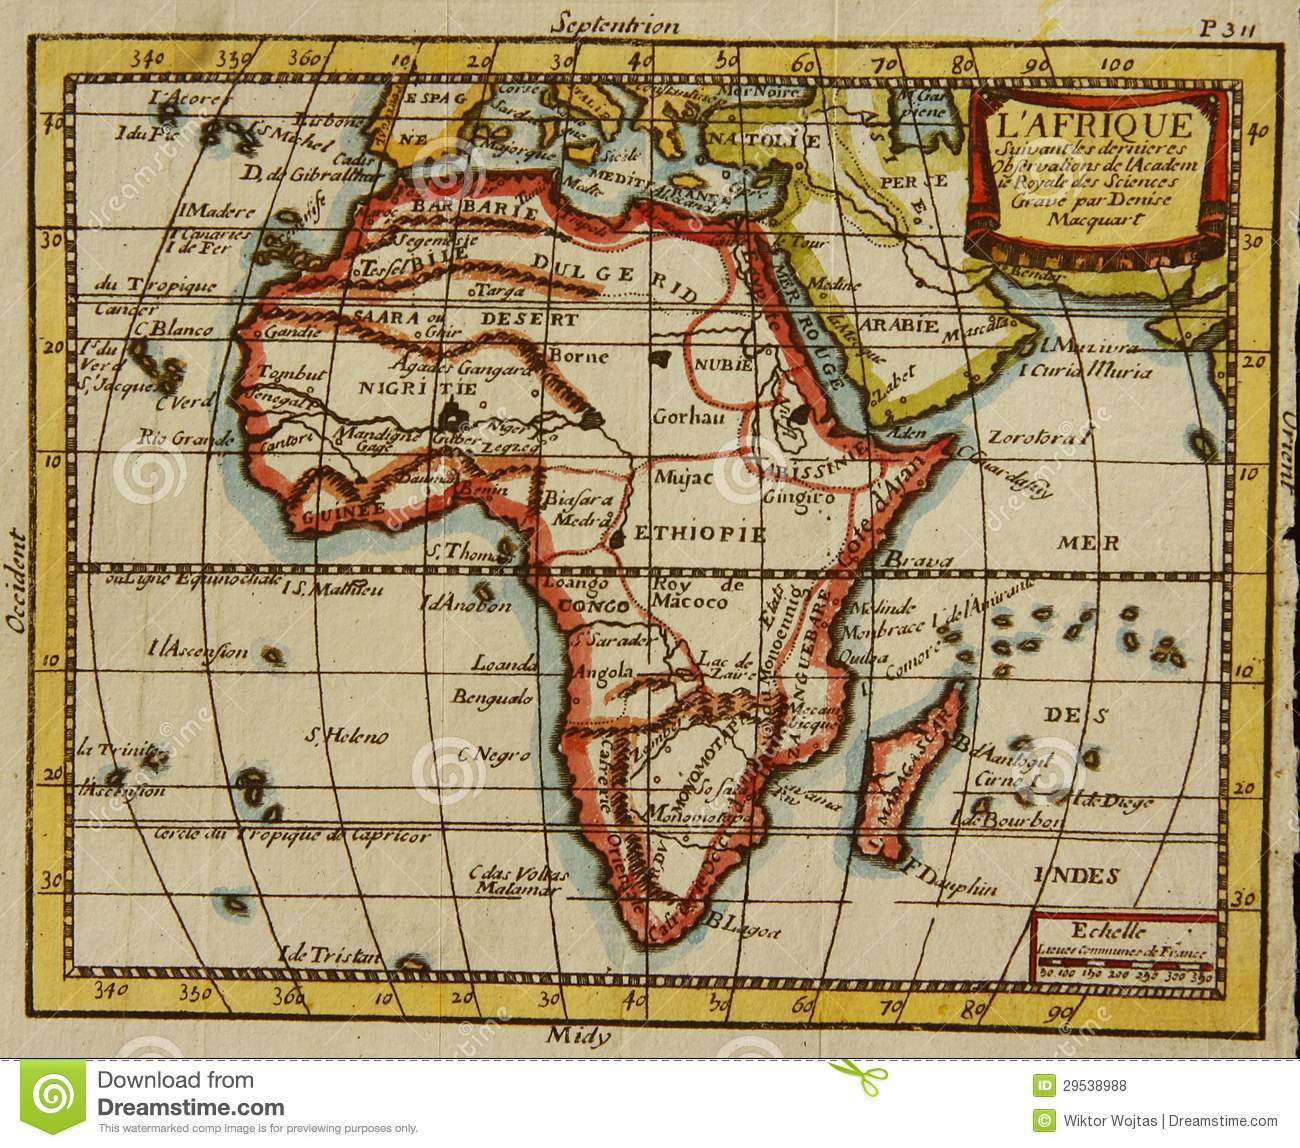 Old map of Africa stock photo. Image of history, thomas - 29538988